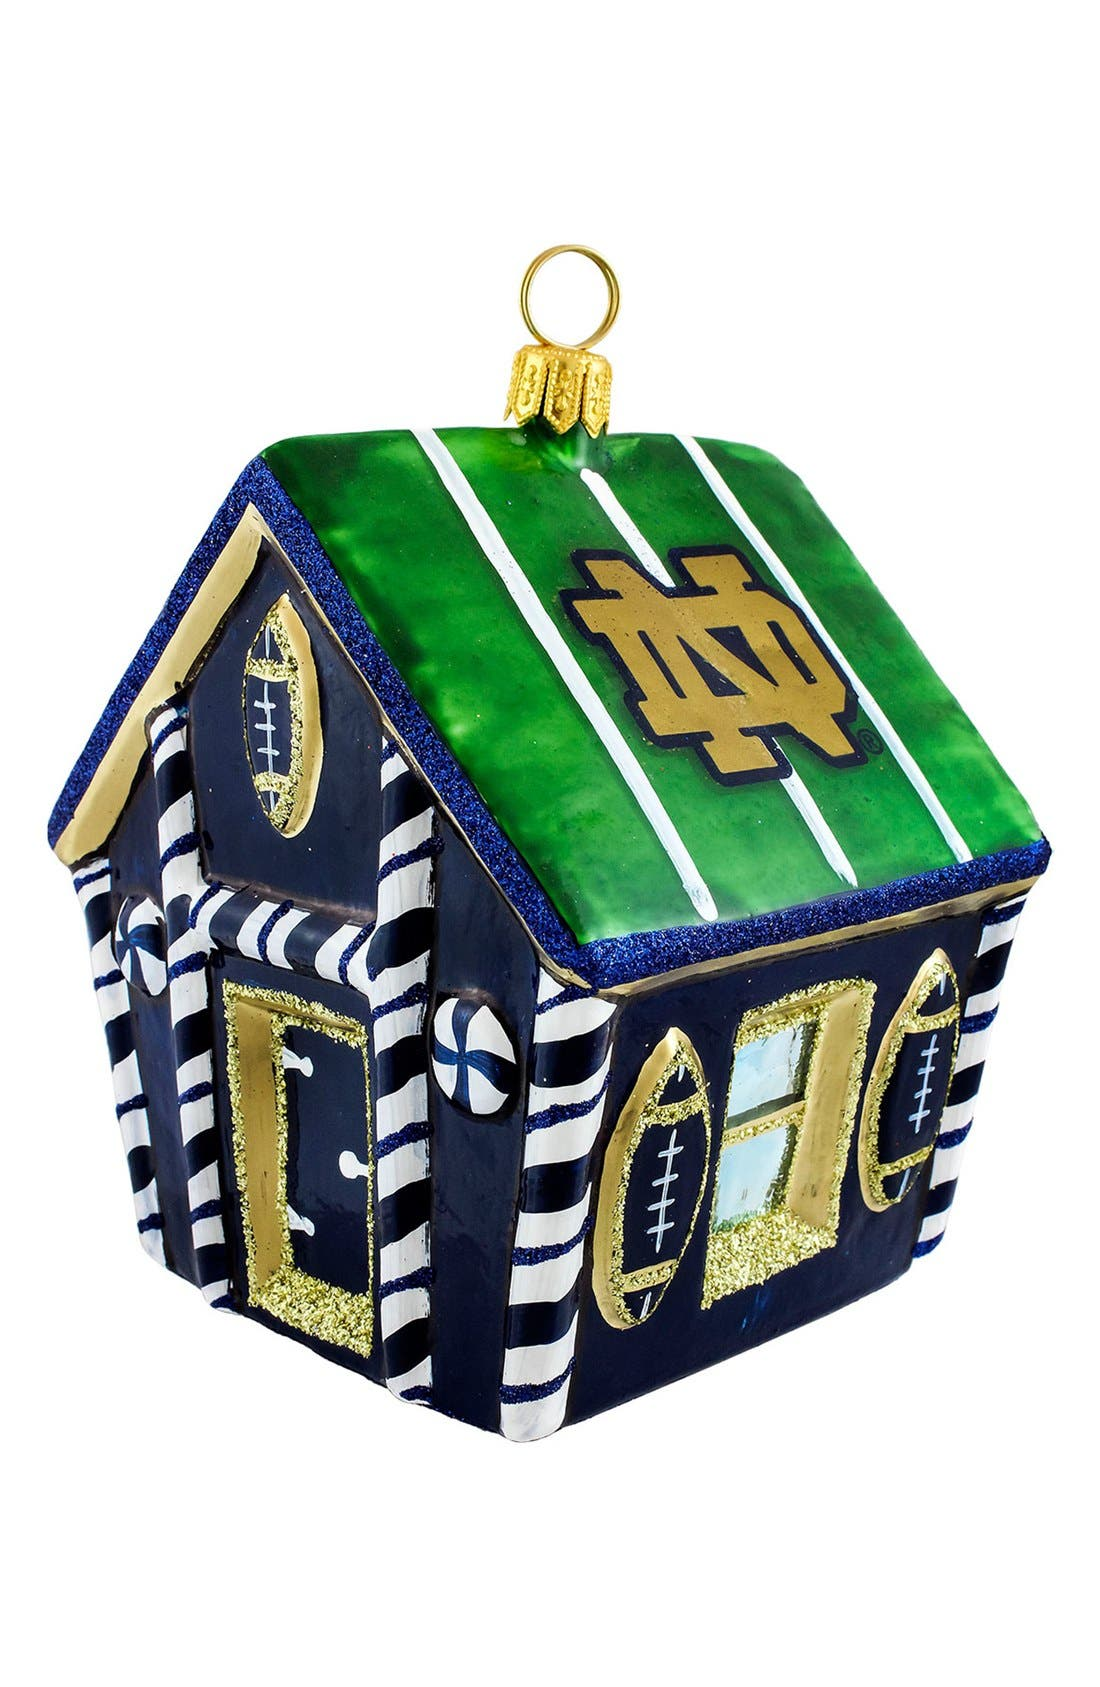 Alternate Image 1 Selected - Joy to the World Collectibles 'Collegiate Gingerbread House' Ornament